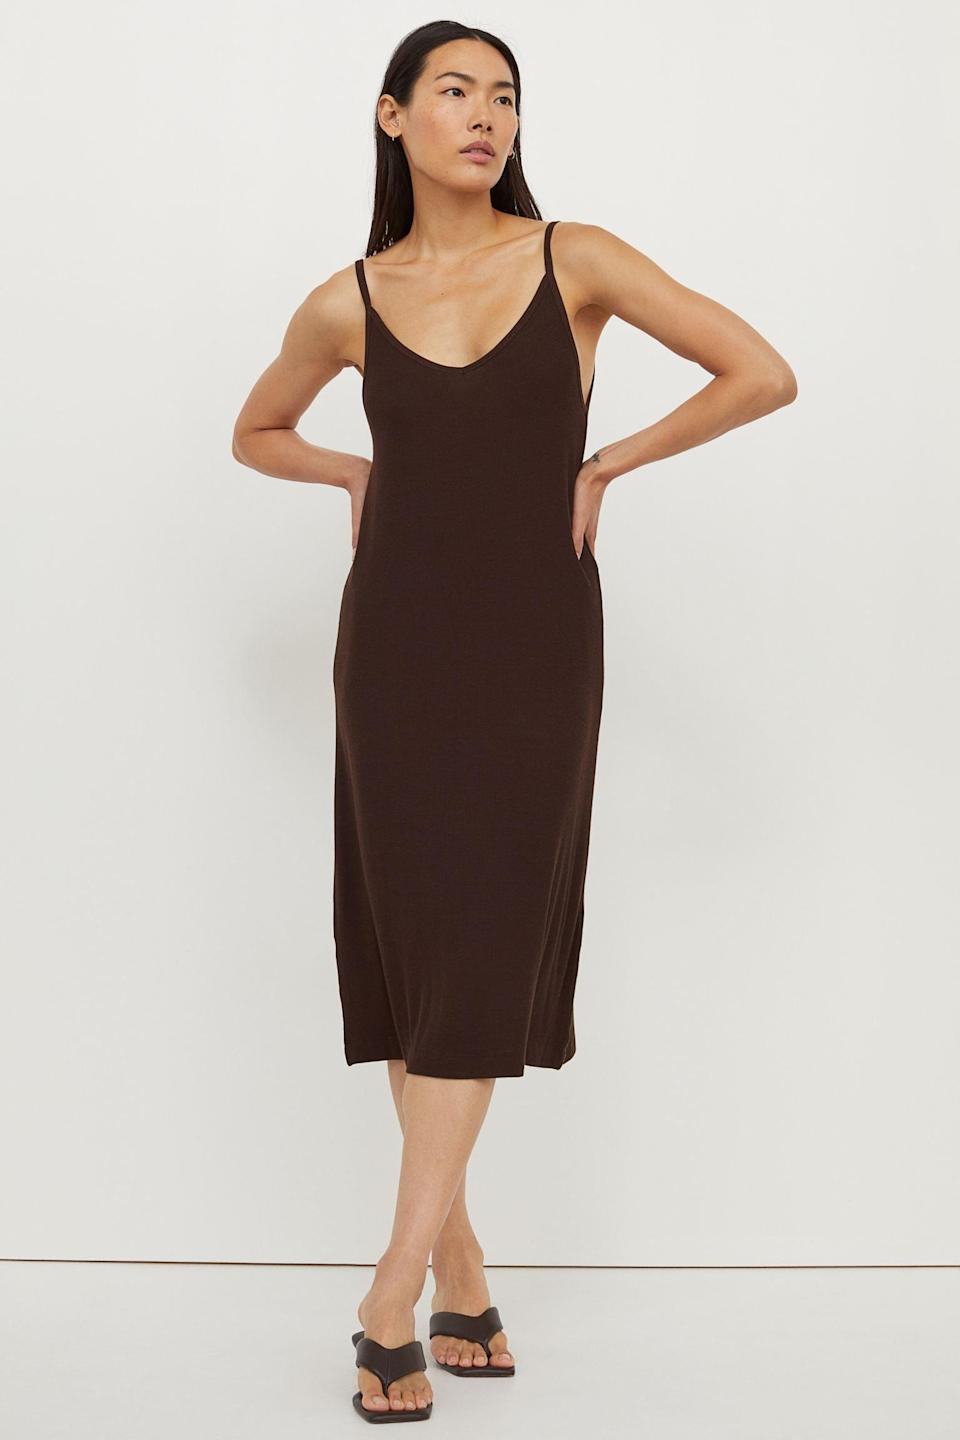 <p>You're now onto the second date, and you're wondering where to find a relaxed yet still elevated slip-style dress? This <span>Ribbed Jersey Dress</span> ($16, originally $18) is the answer.</p>